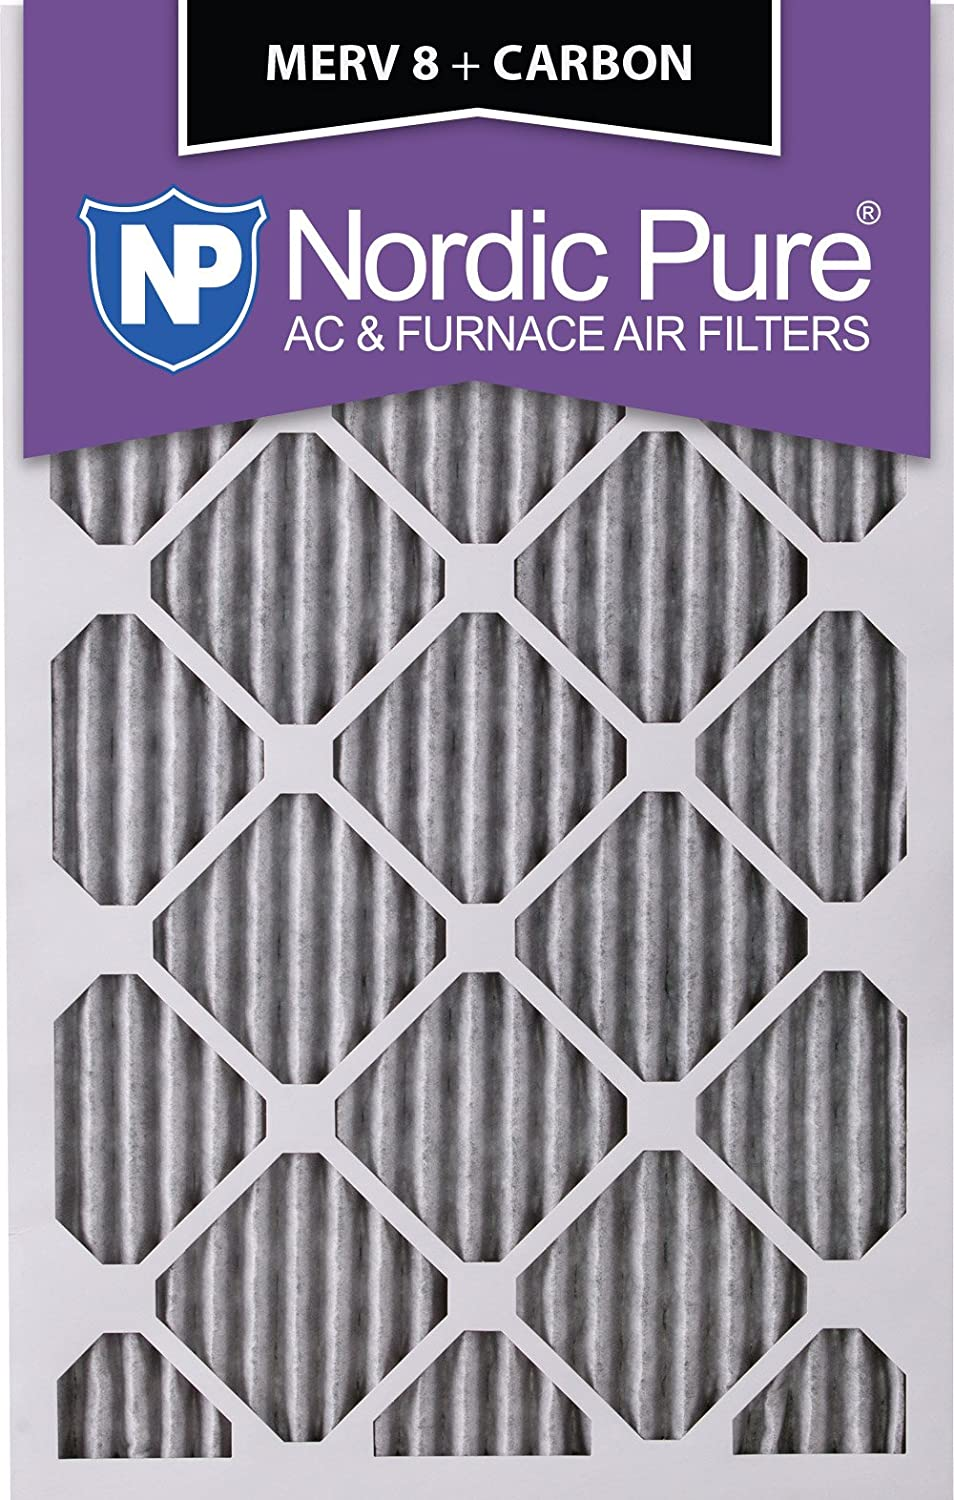 Nordic Pure 18x25x1 MERV 8 Pleated Plus Carbon AC Furnace Air Filters 18x25x1PM8 C 6 Piece